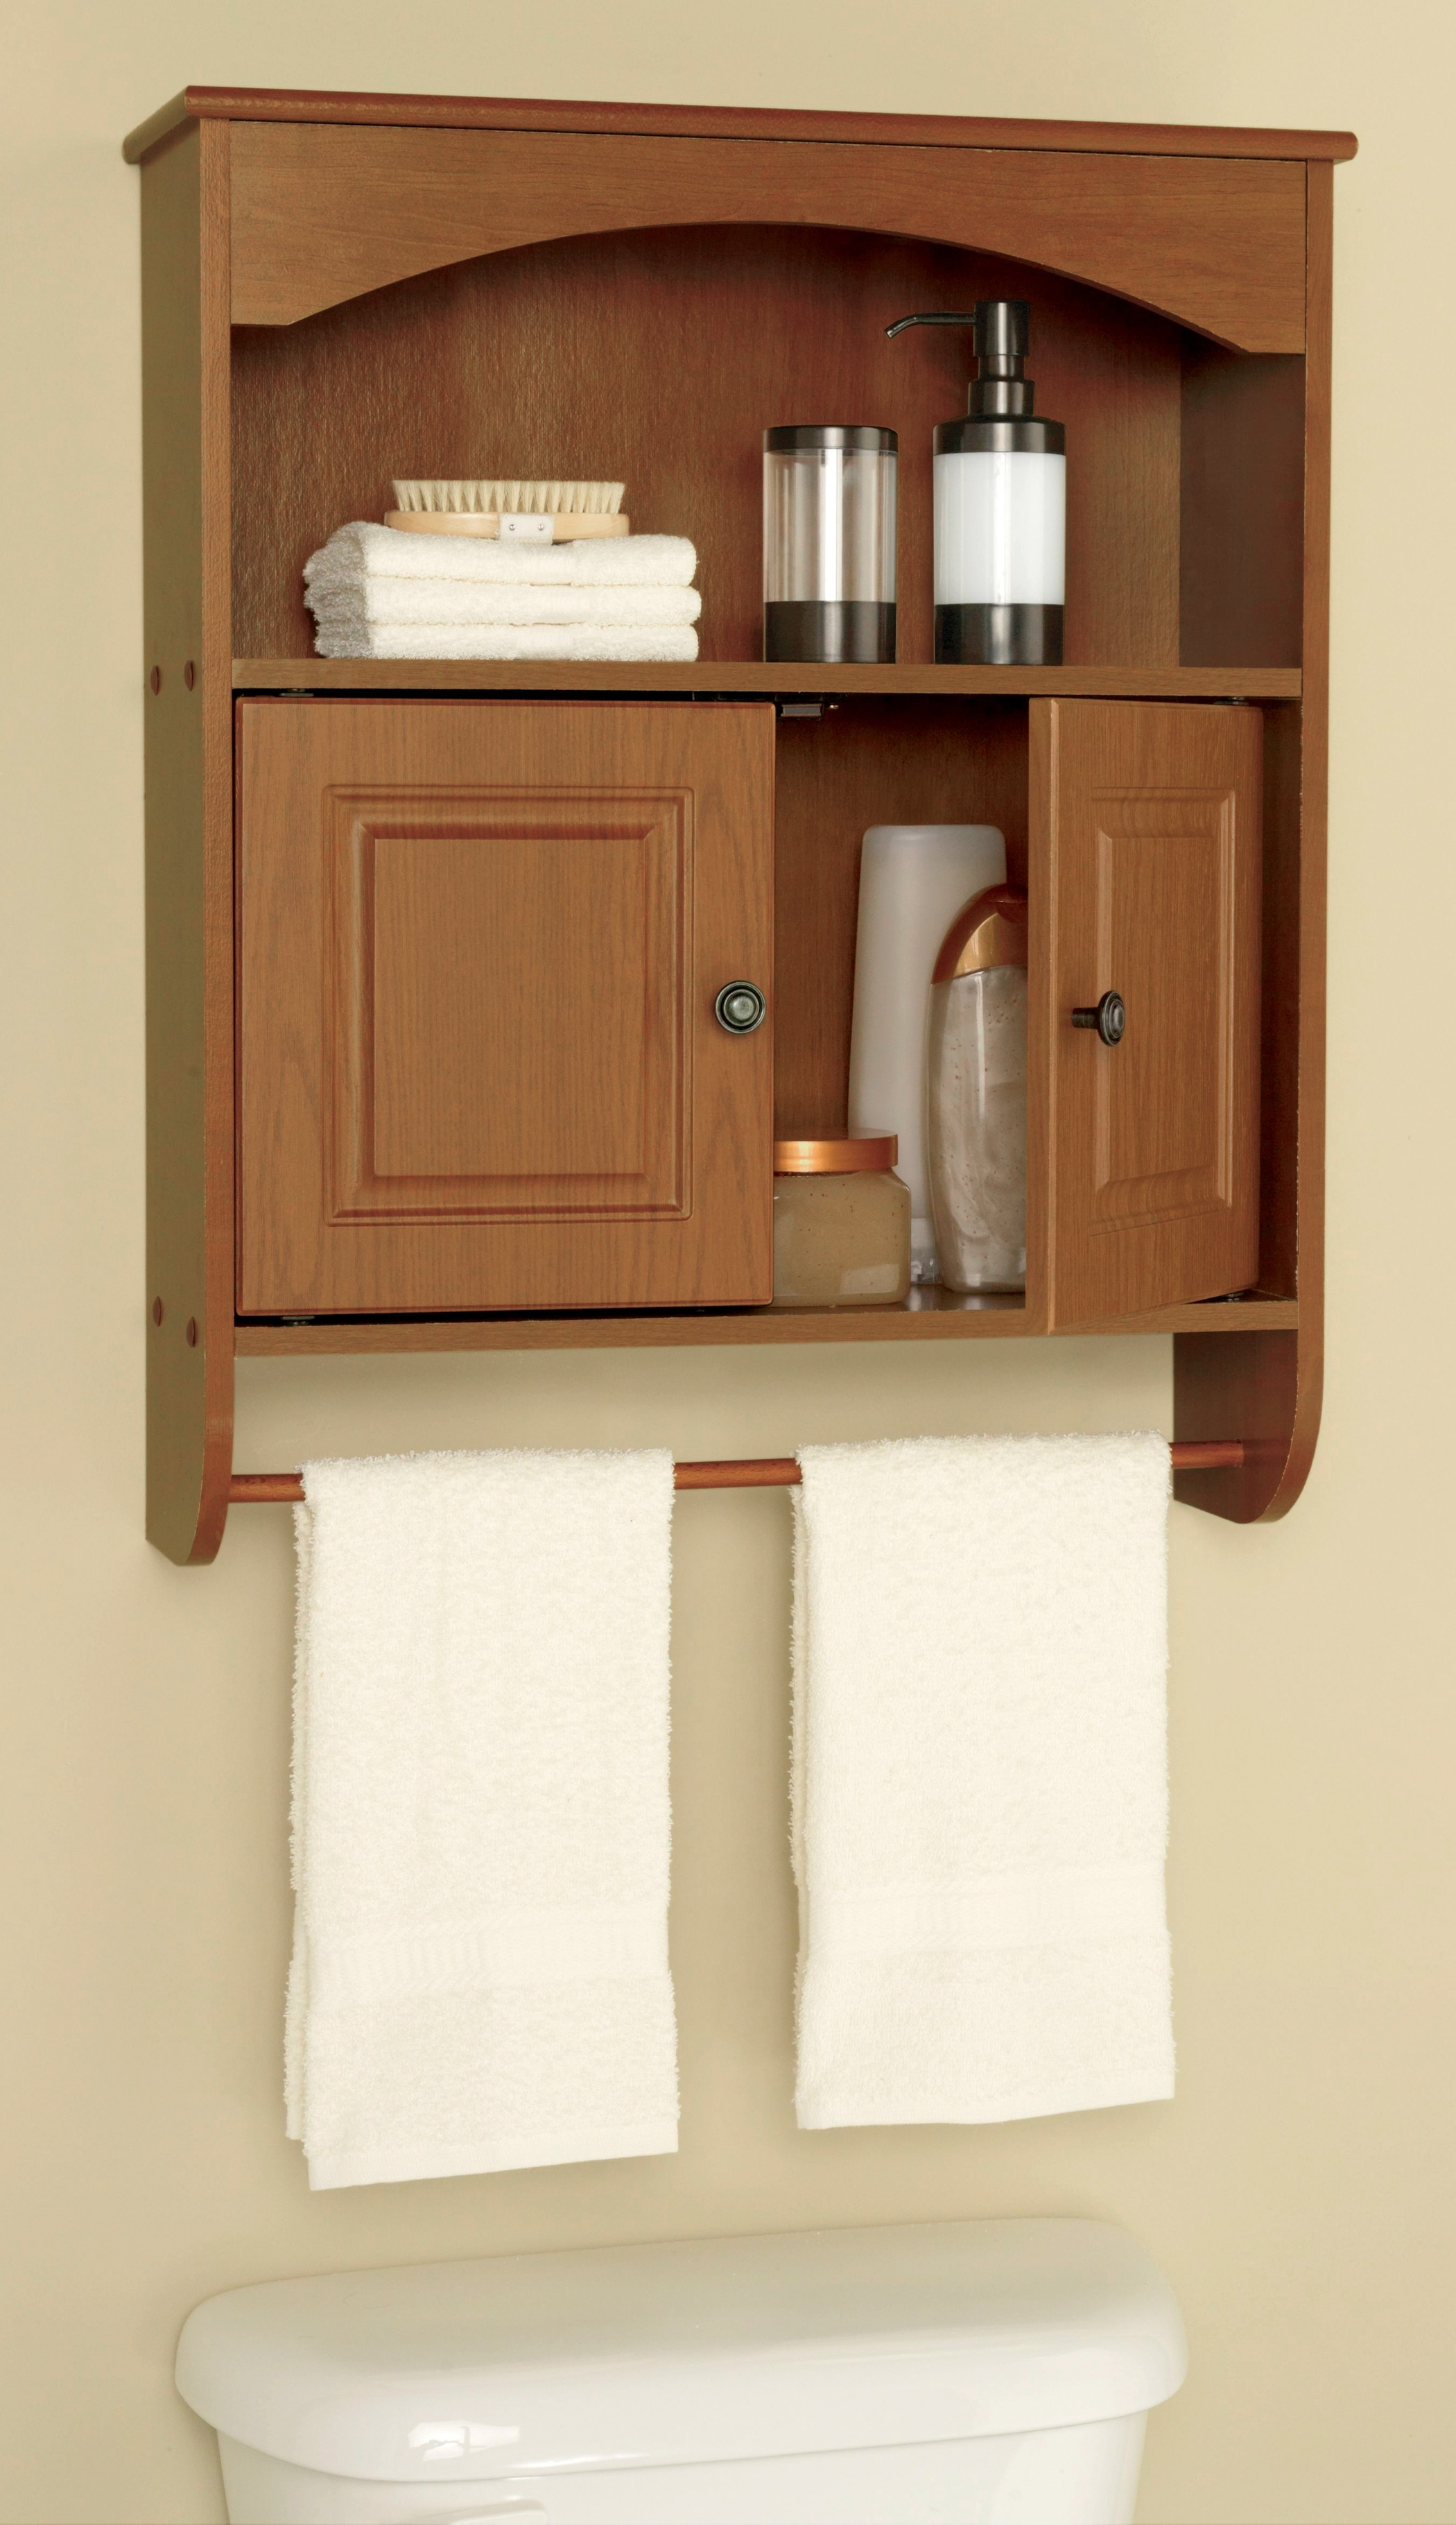 Bathroom Wall Cabinets For Towels